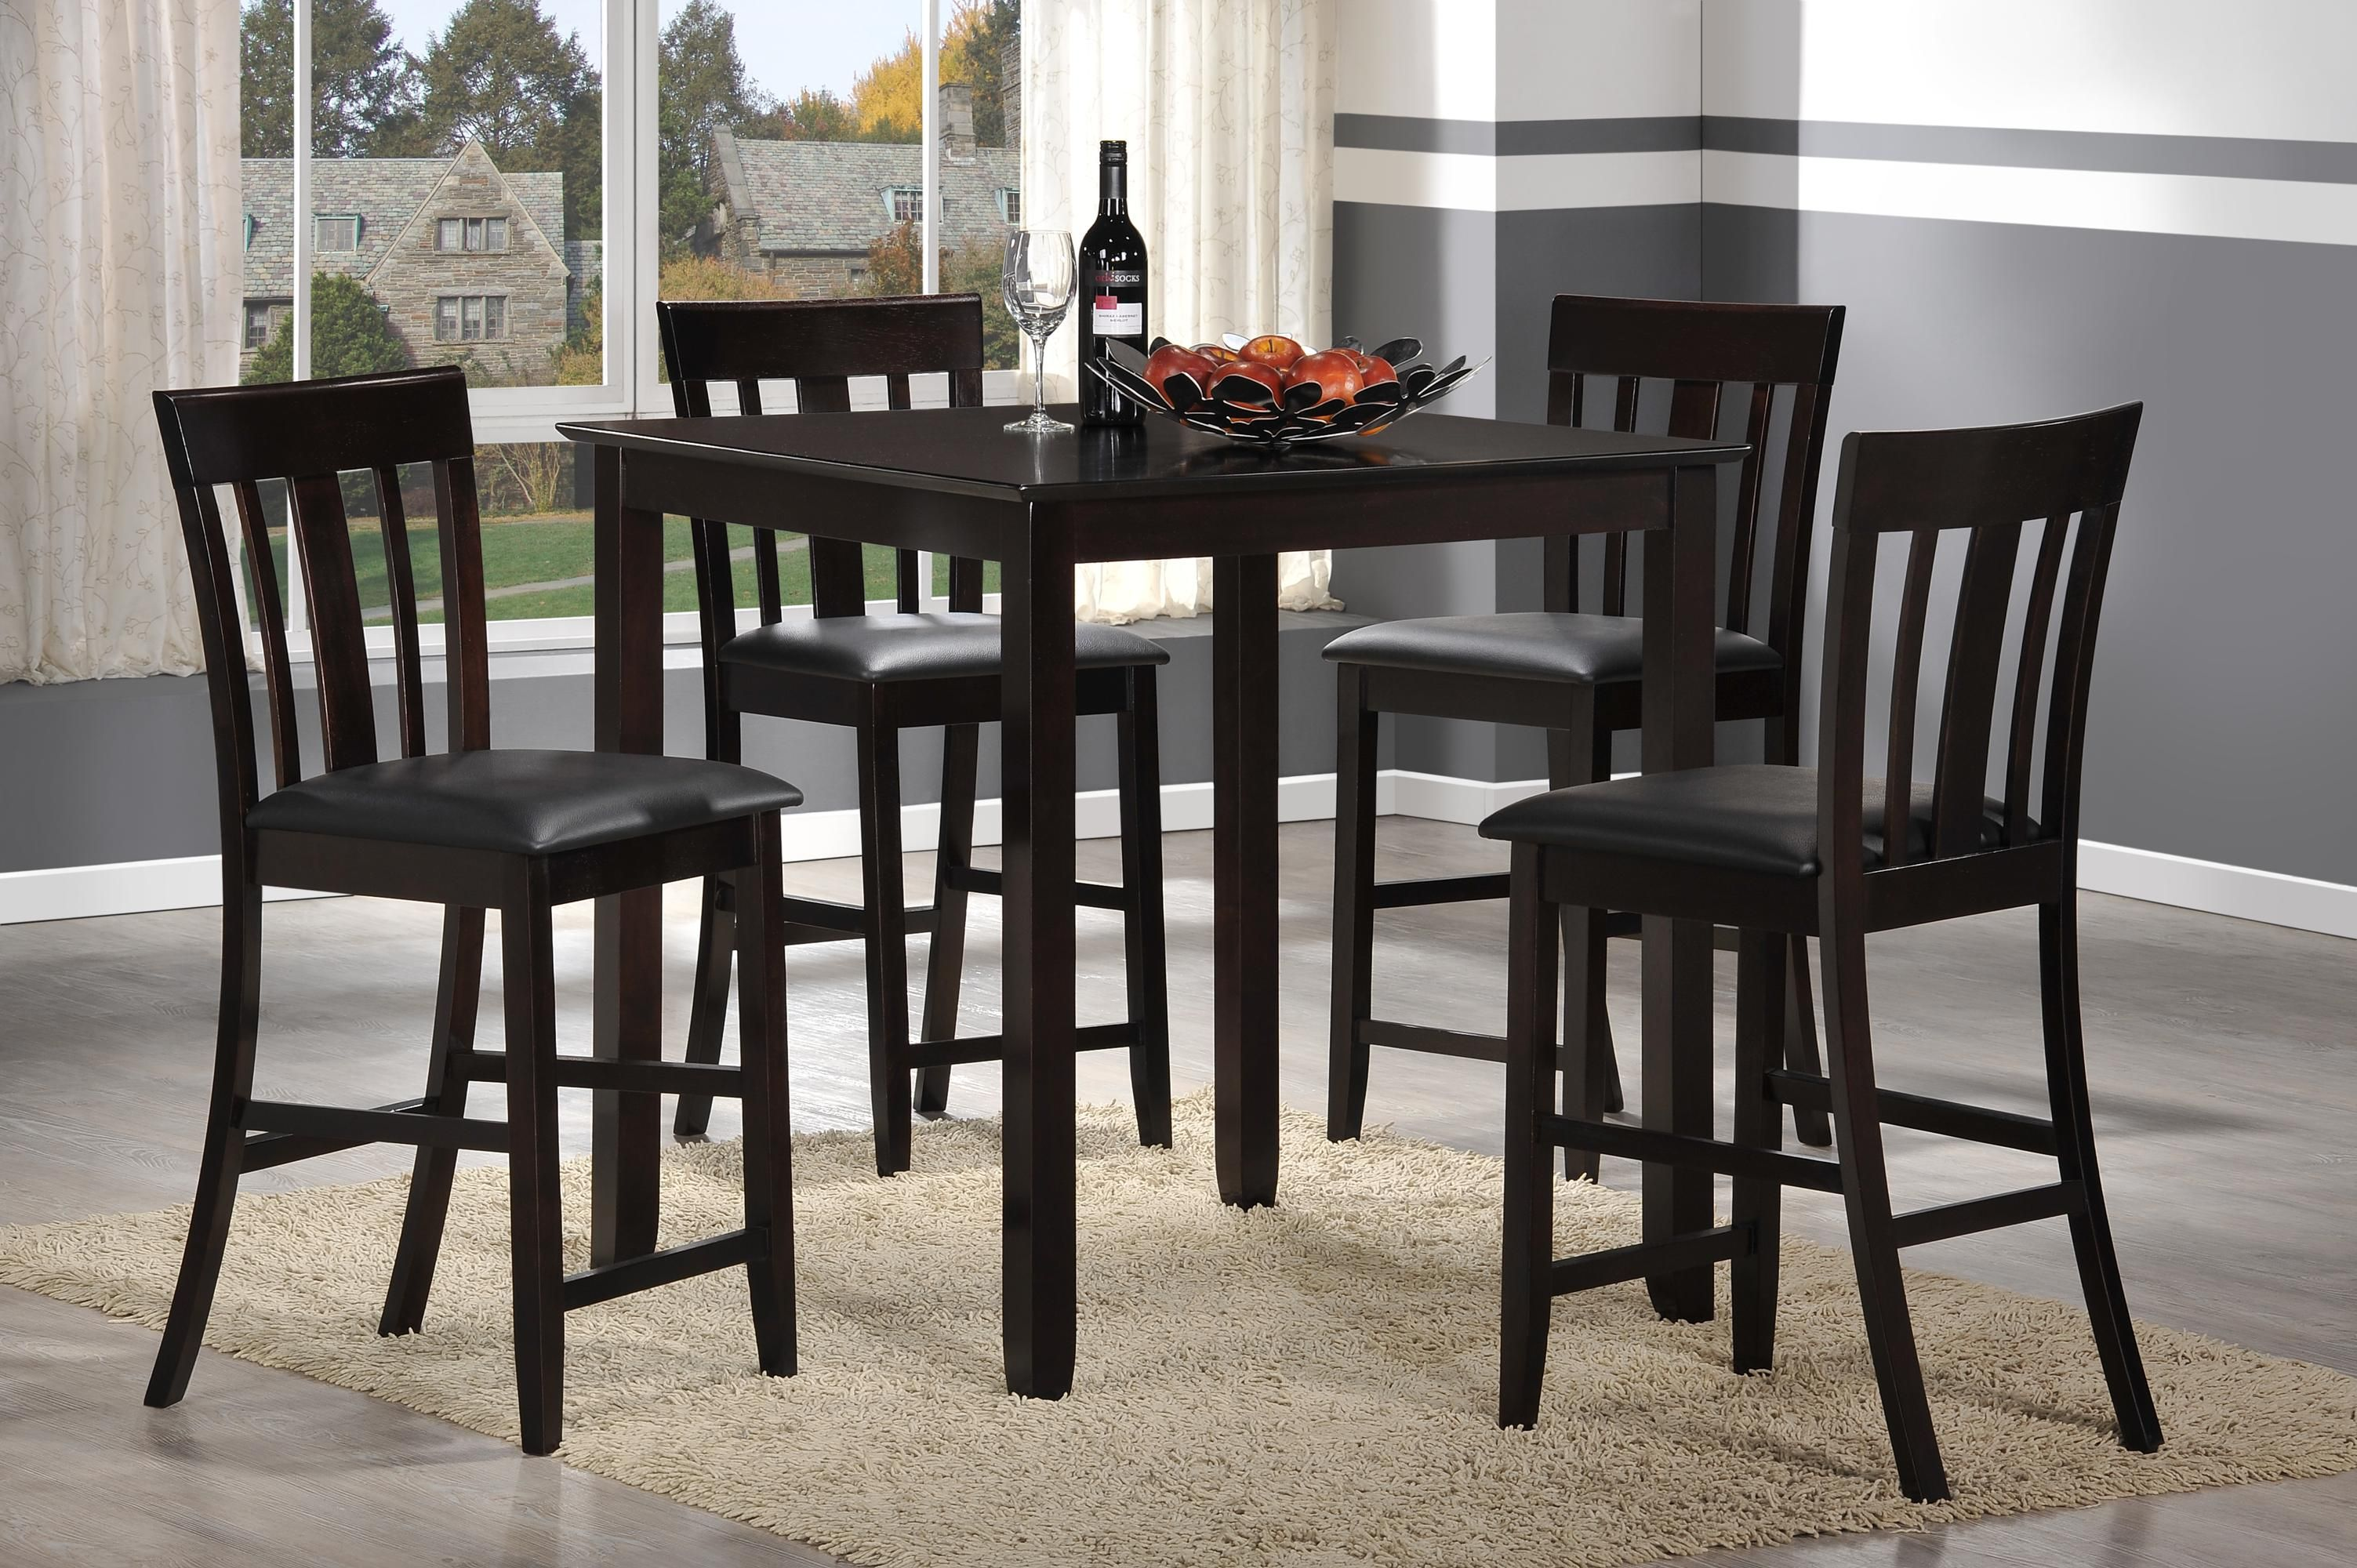 Cafe 5193 With Counter Stool Is A New Breakfast Bar Set From Spec In